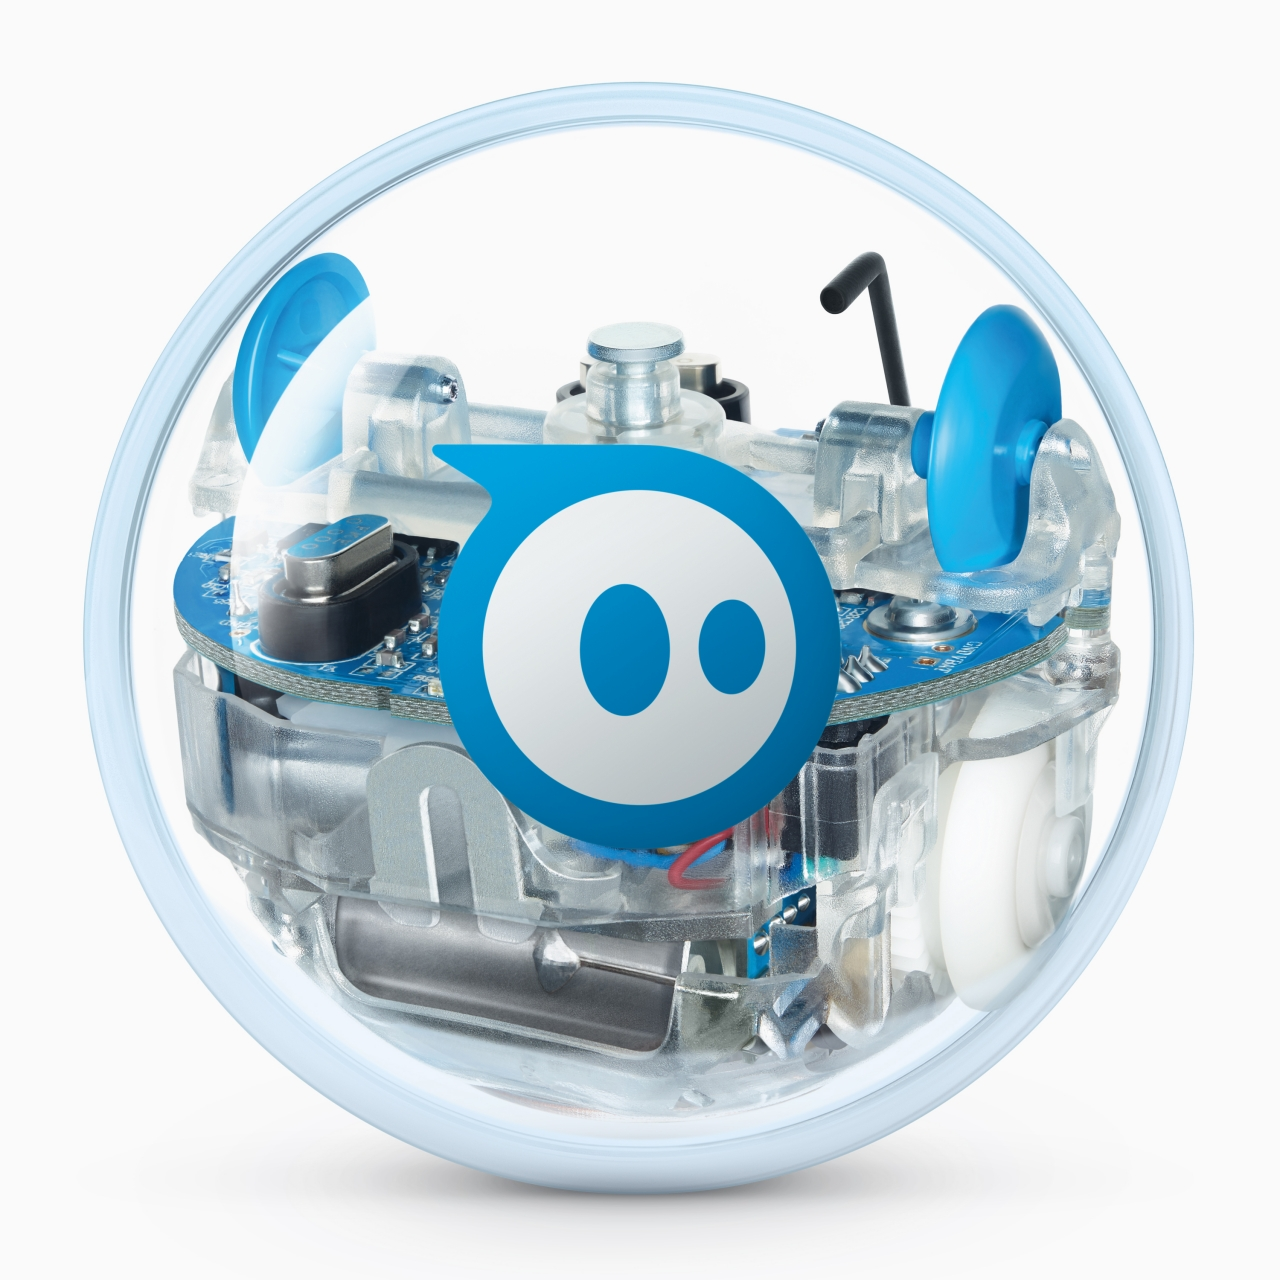 sihirli-elma-swift-playgorunds-1-5-sphero-sprk-plus-robot